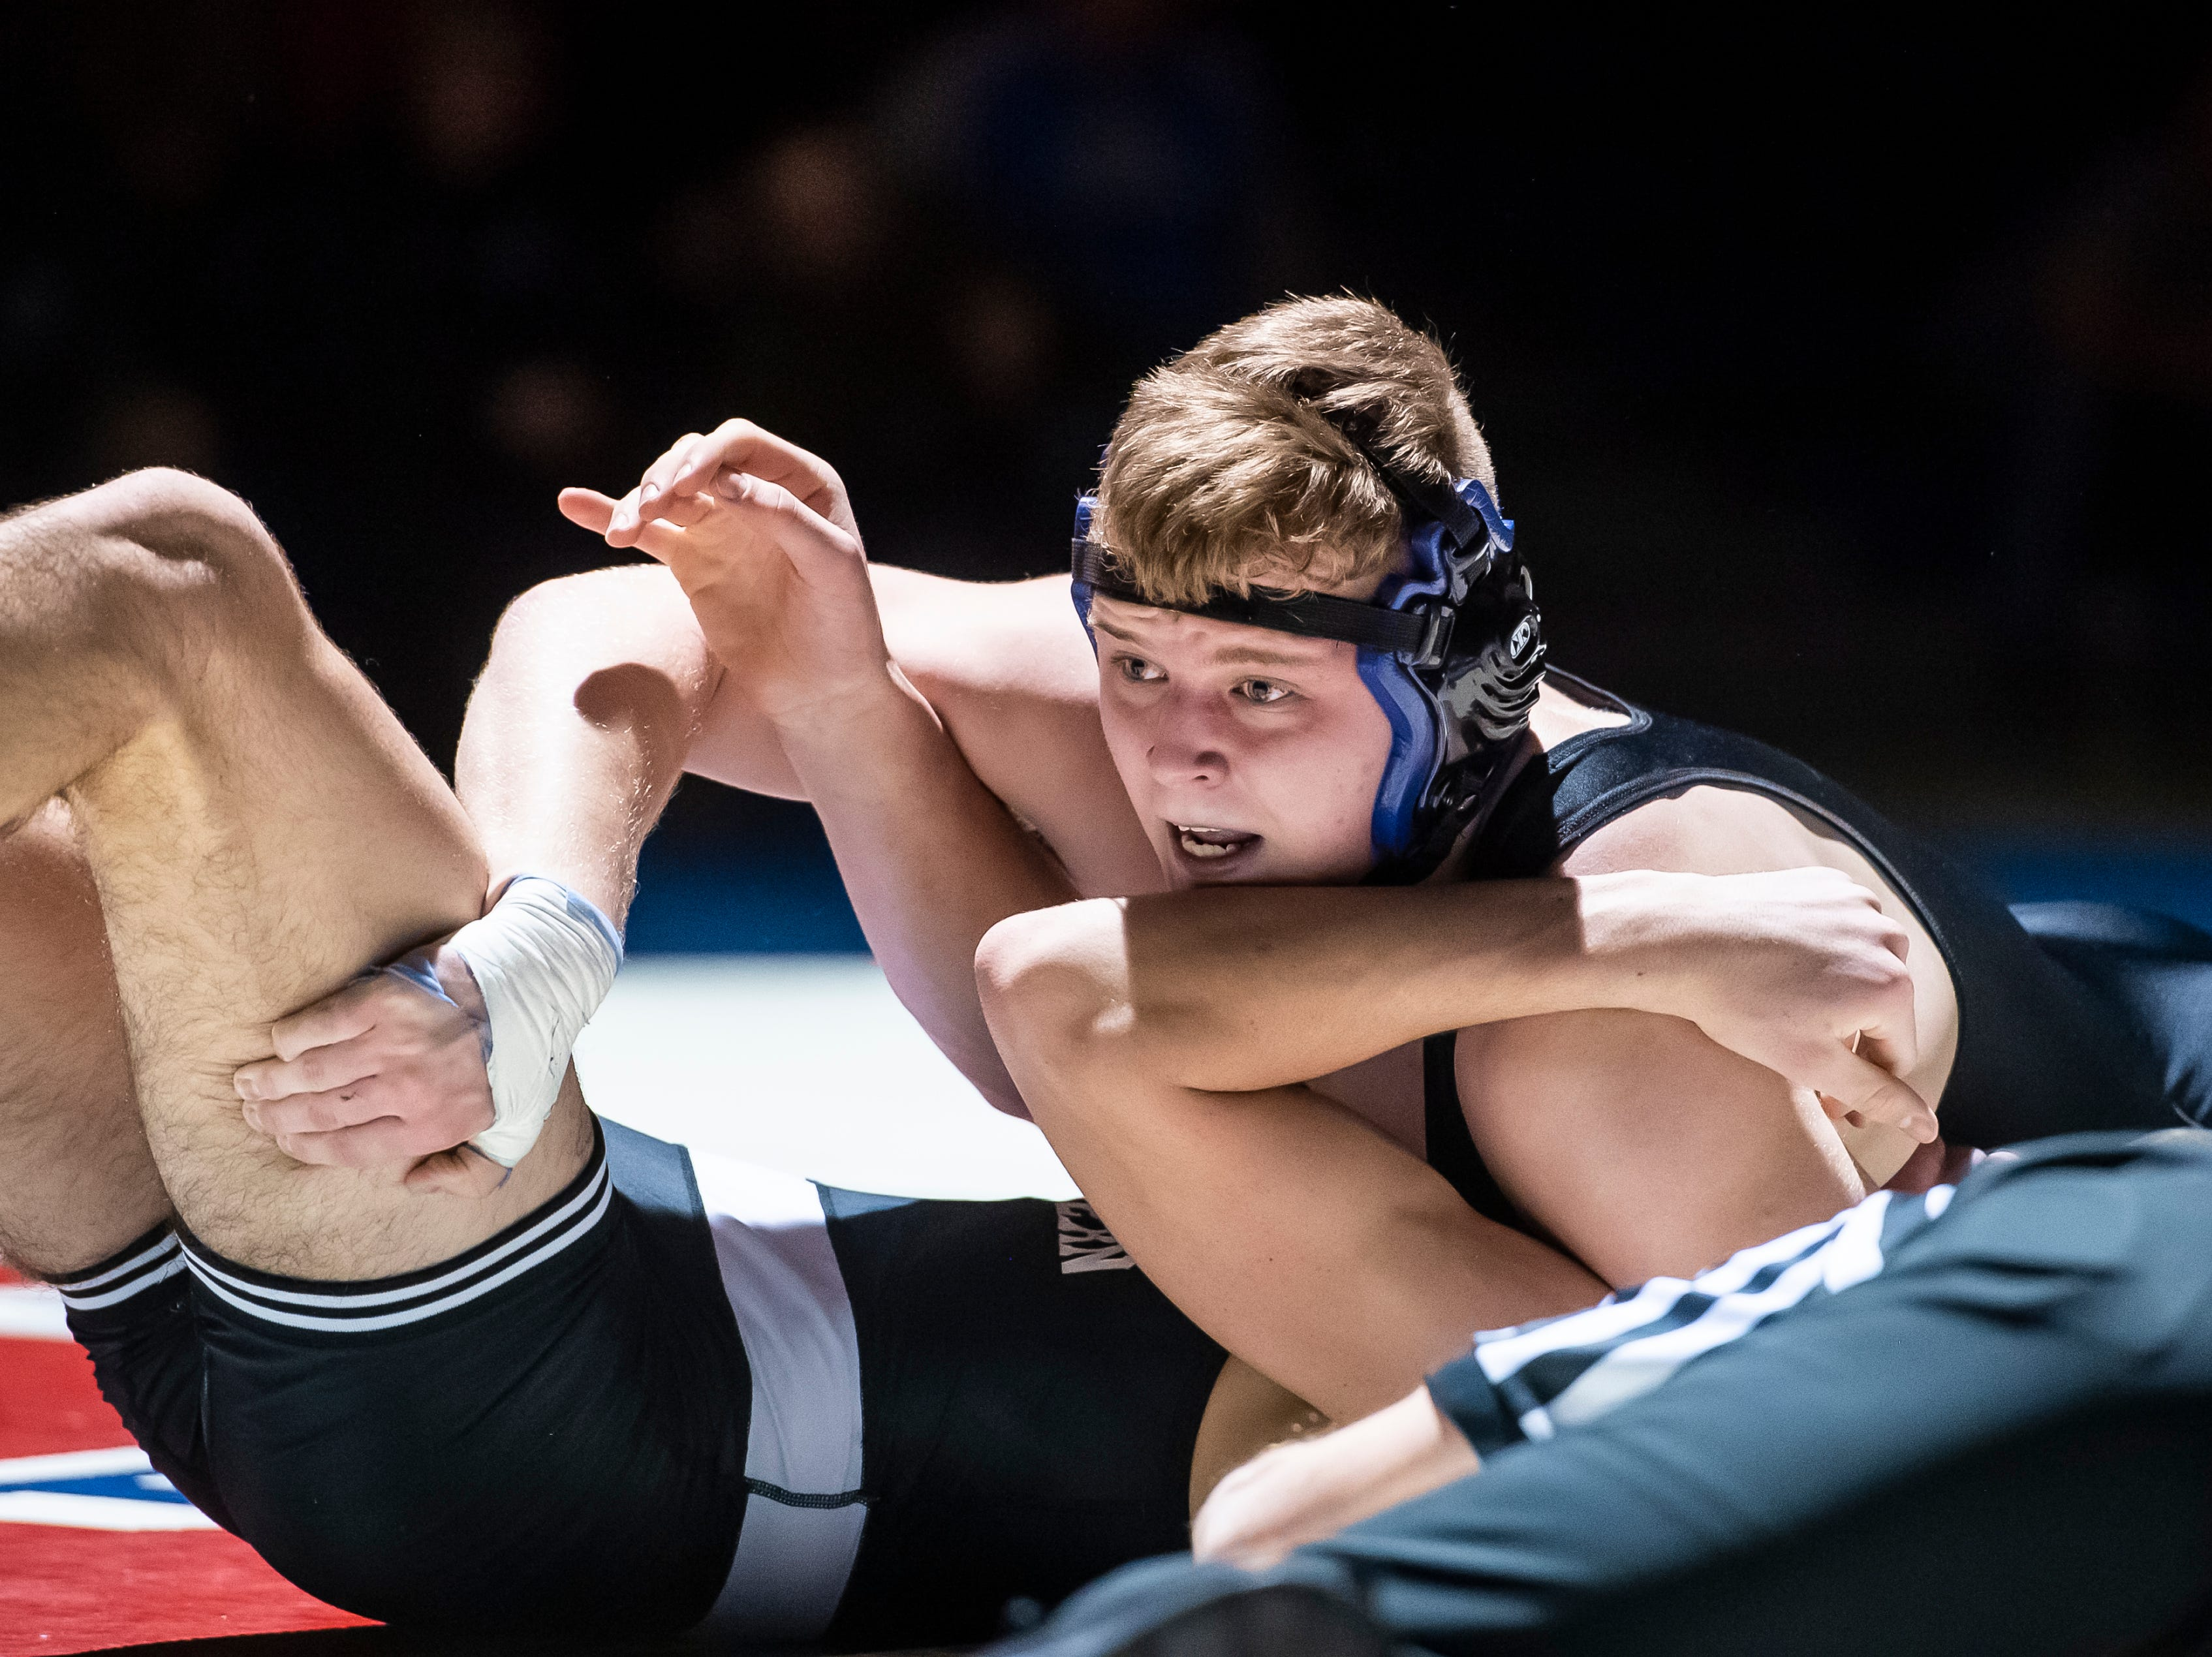 Spring Grove's Eric Glass, top, pins South Western's Nathan Hawkins during the 195-pound bout on Tuesday, Jan. 15, 2019. The pin gave Spring Grove the win 36-25 during the Rockets' annual 'Take Down Cancer' match, which raised $44,250 for the Heather L. Baker Foundation.